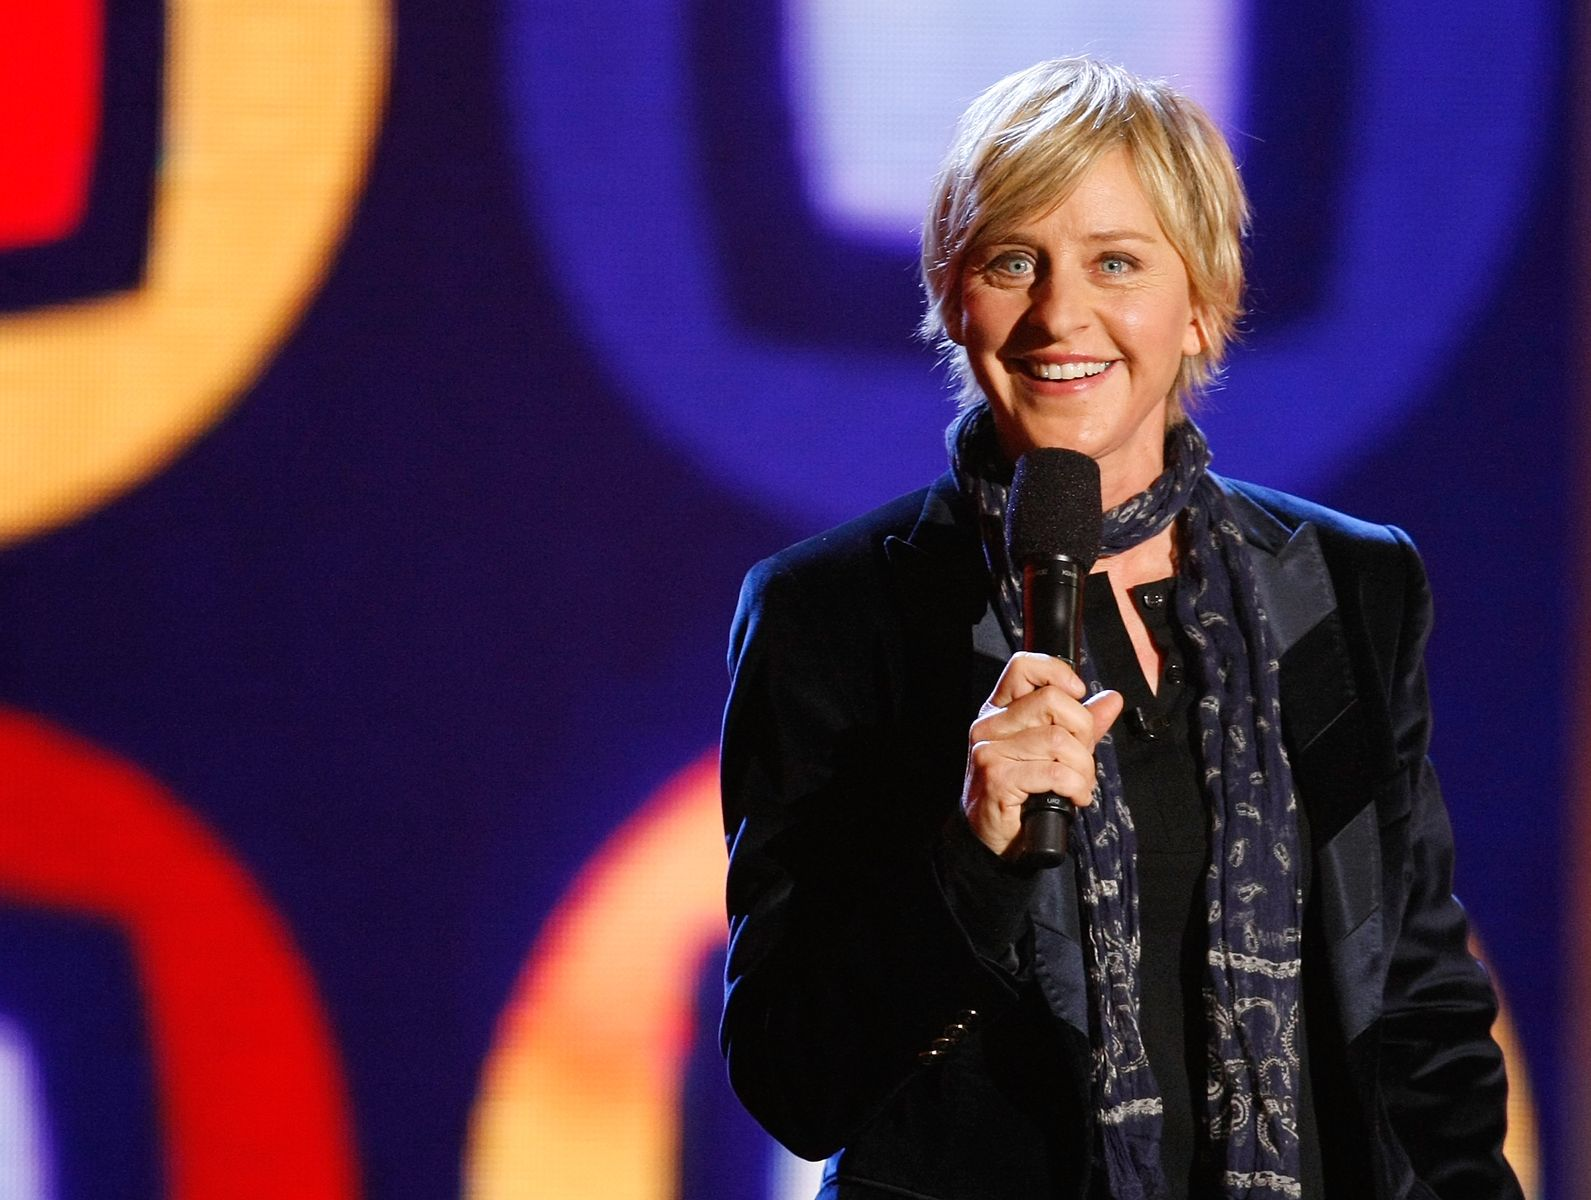 Ellen DeGeneres performs at a taping of ''Ellen's Even Bigger Really Big Show'' during The Comedy Festivalon November 20, 2008, in Las Vegas, Nevada | Photo:Ethan Miller/Getty Images